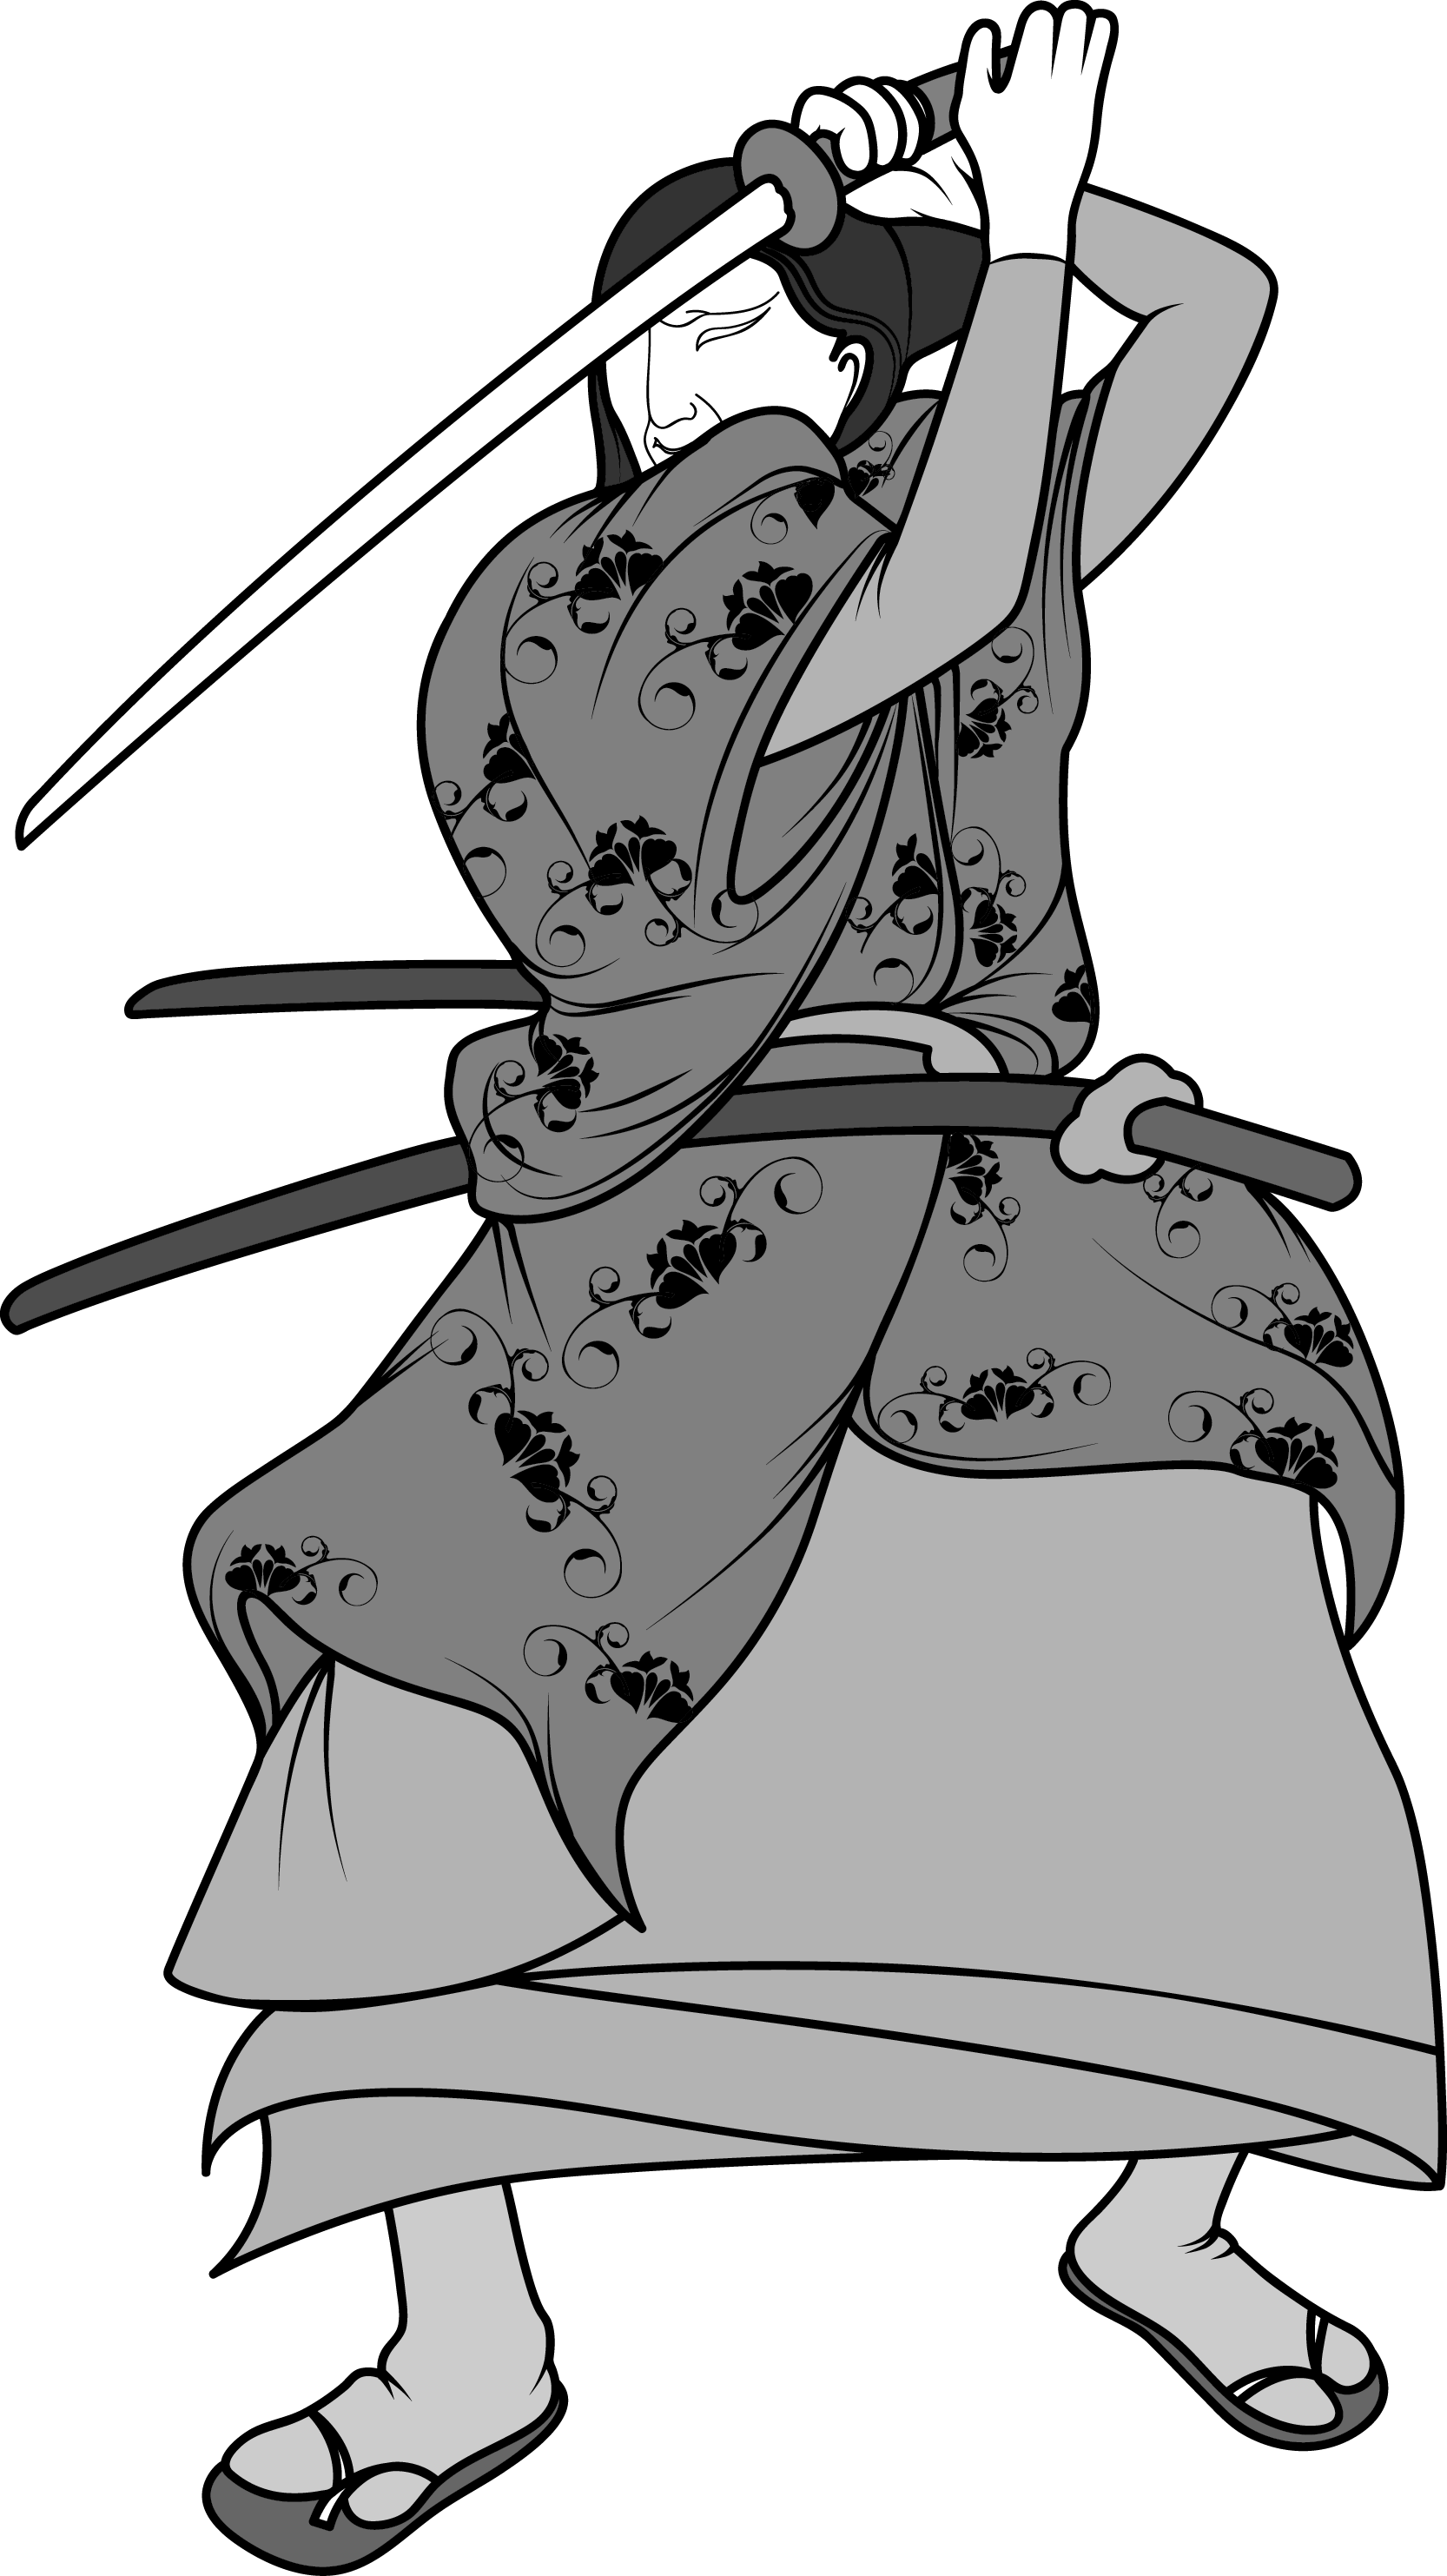 Warrior clipart warrior chinese. Black and white drawing